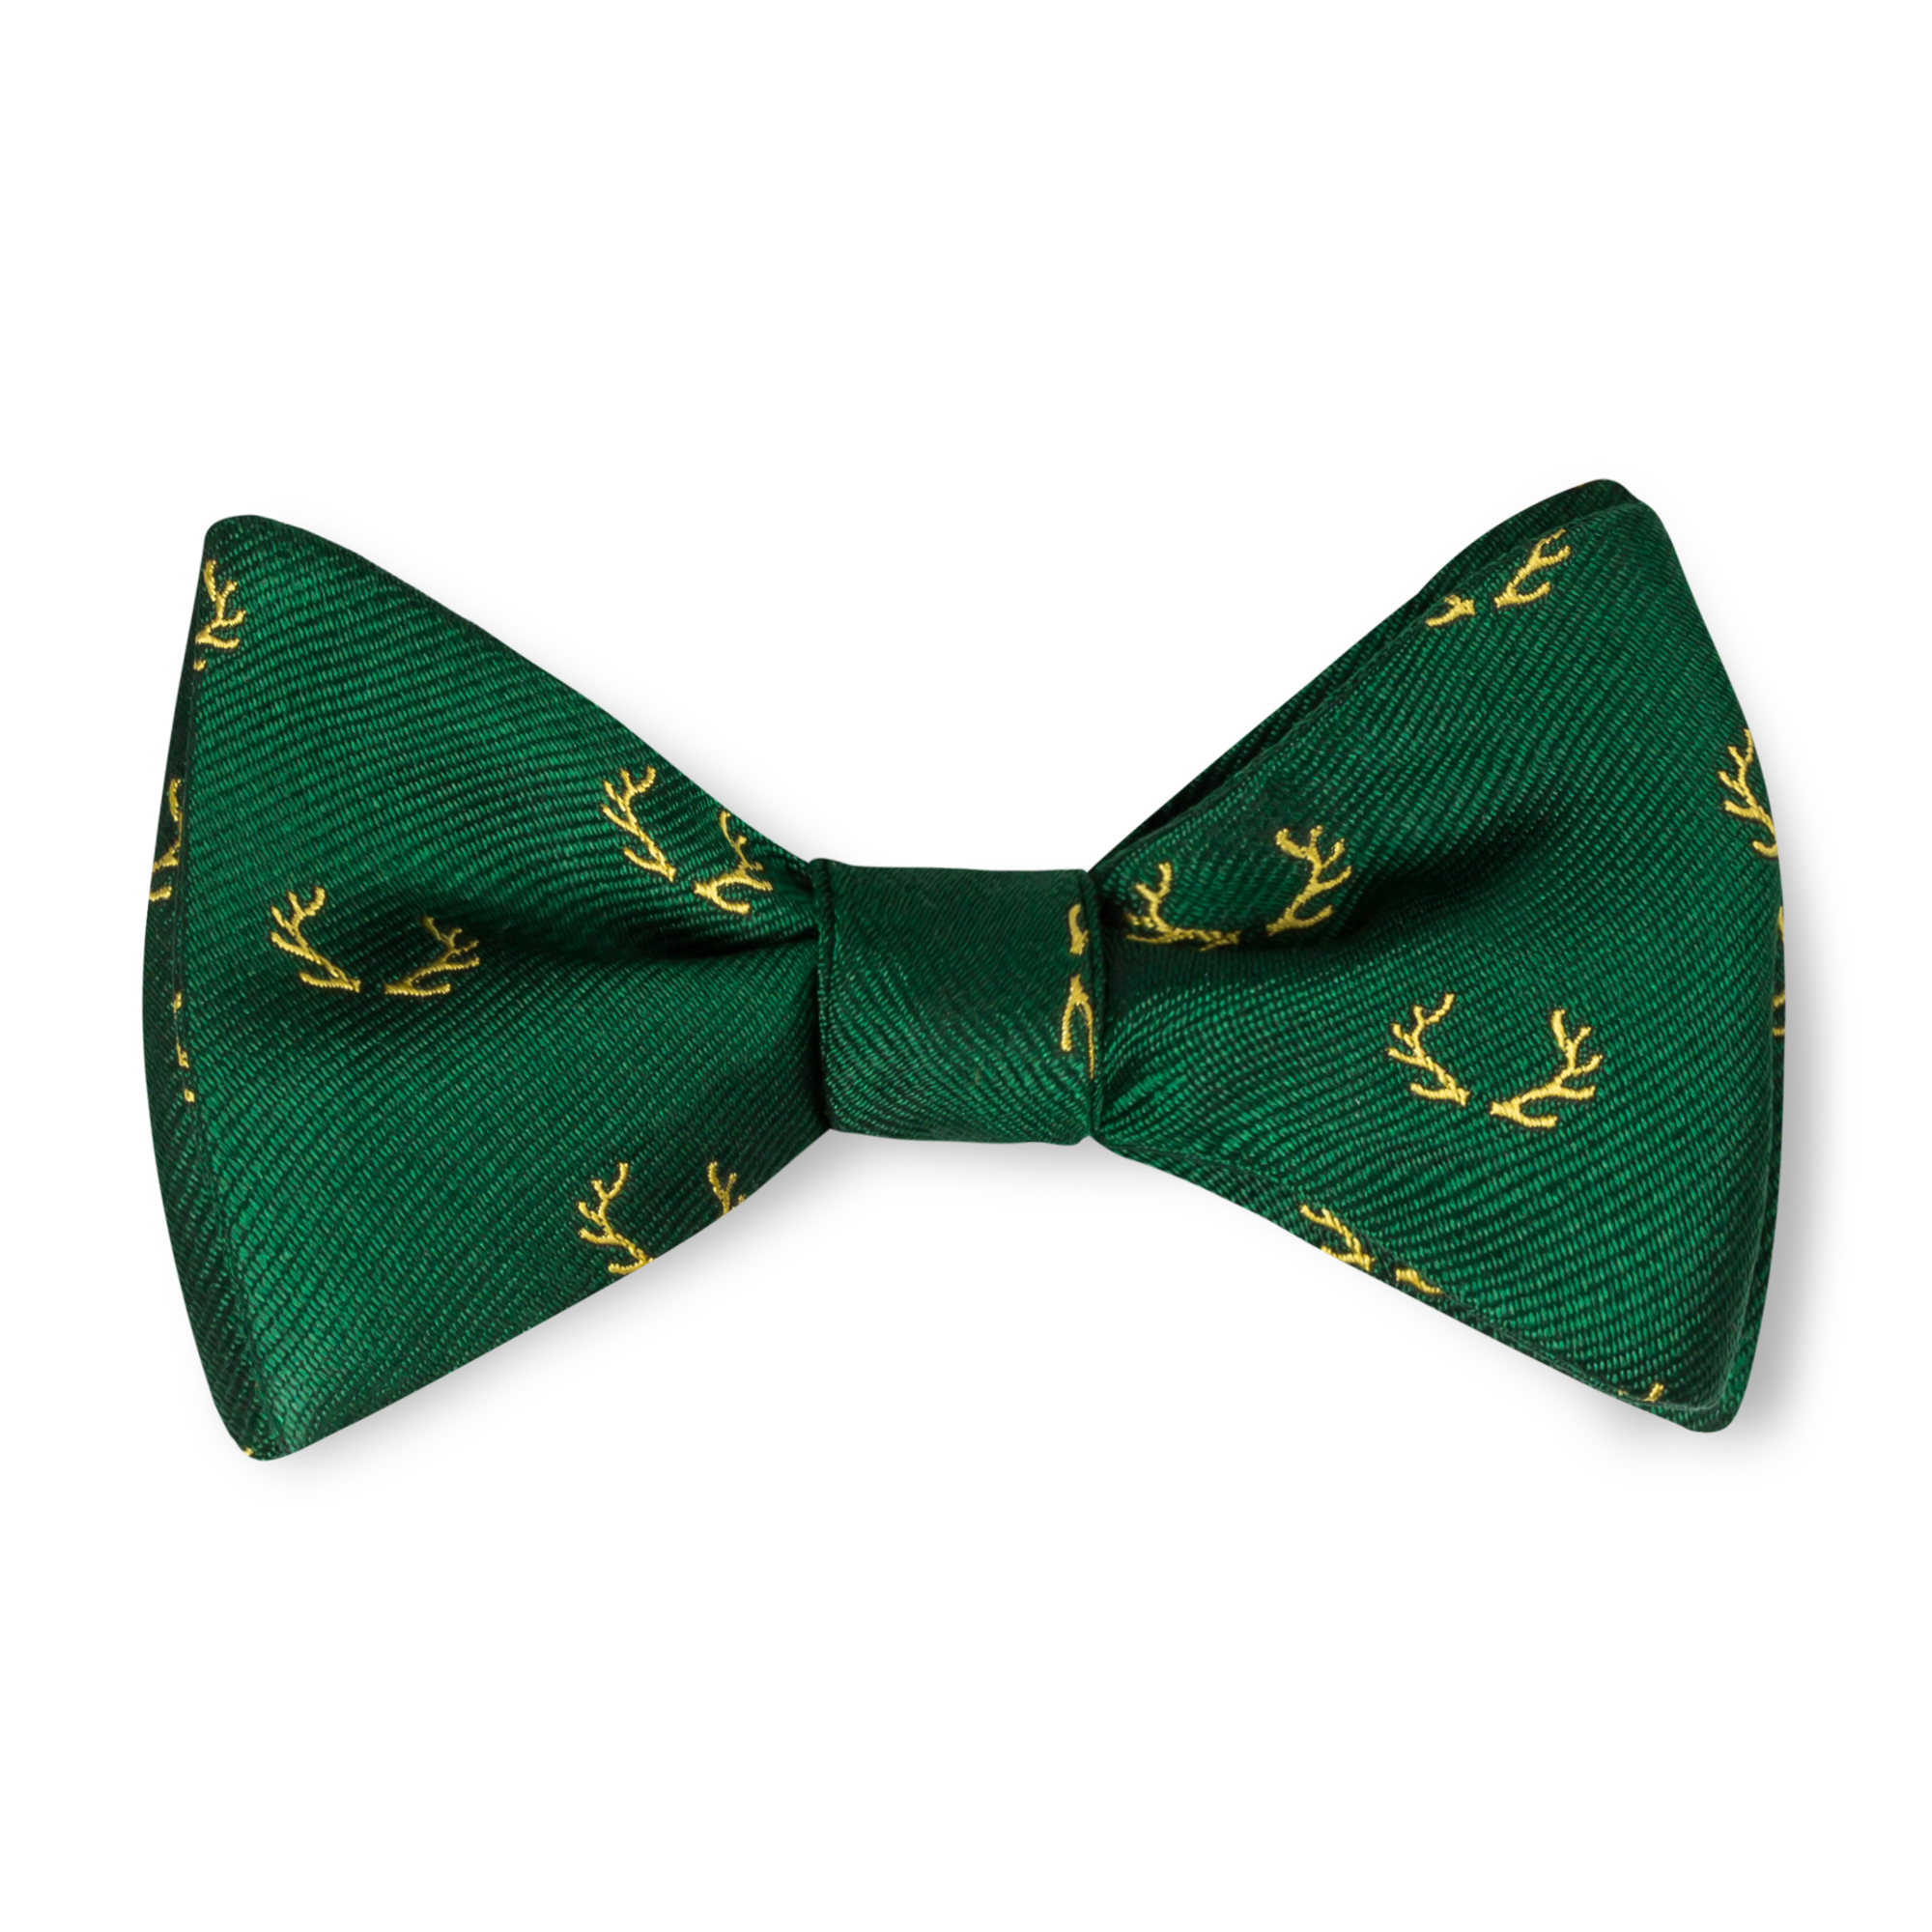 The Boys Antler Bow Tie - Green with Yellow